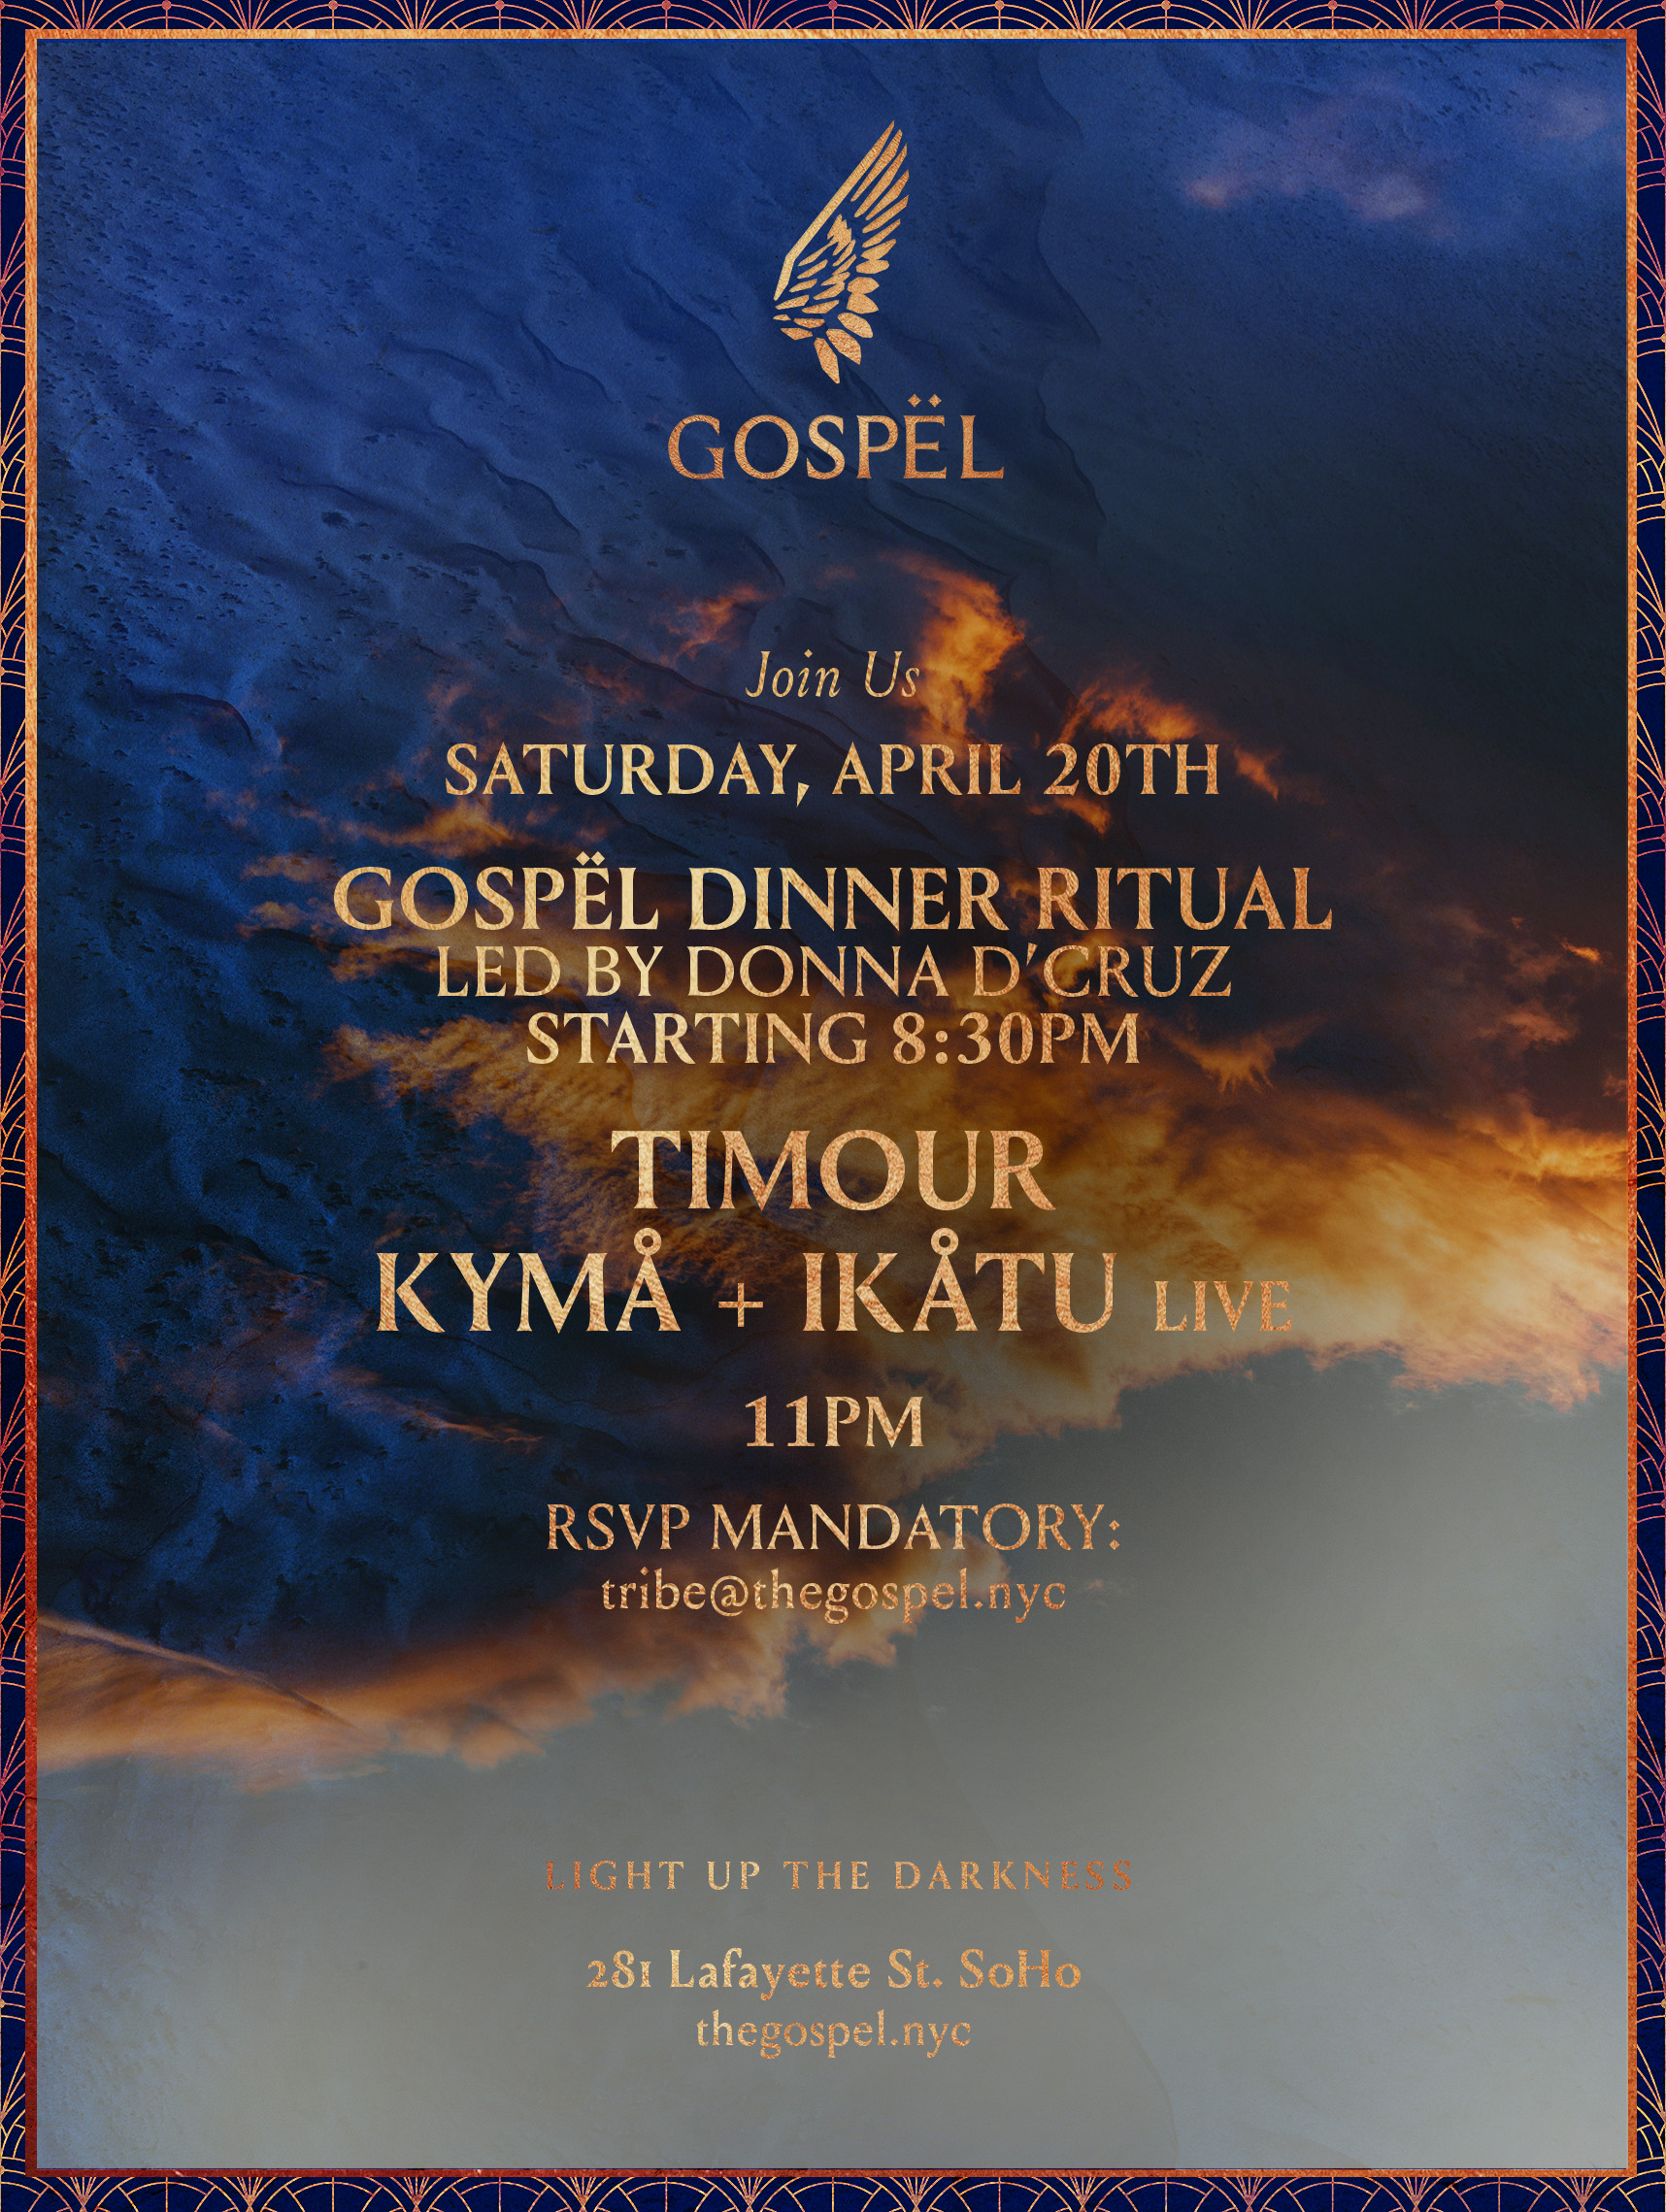 DJ KYMÅ + IKÅTU Live Set @ Gospël APRIL 20TH — Kyma